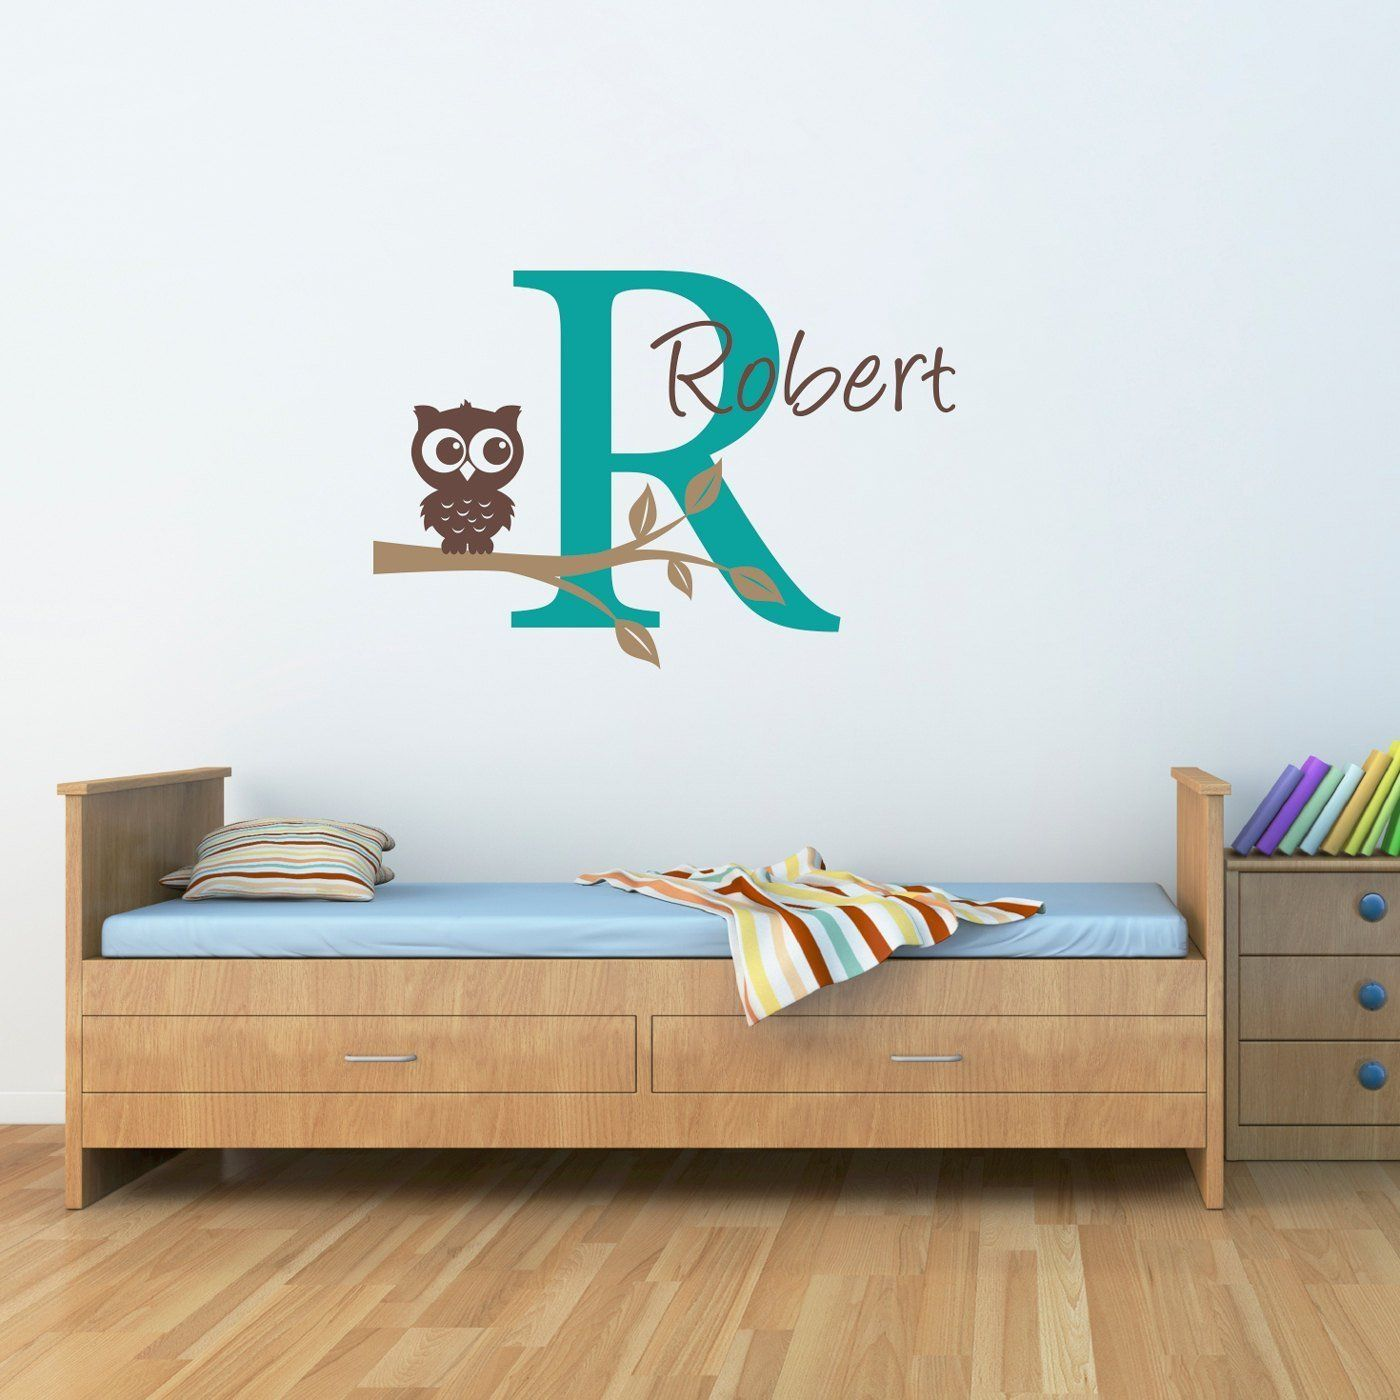 Initial u name decal with owl owl wall decal boys name decal